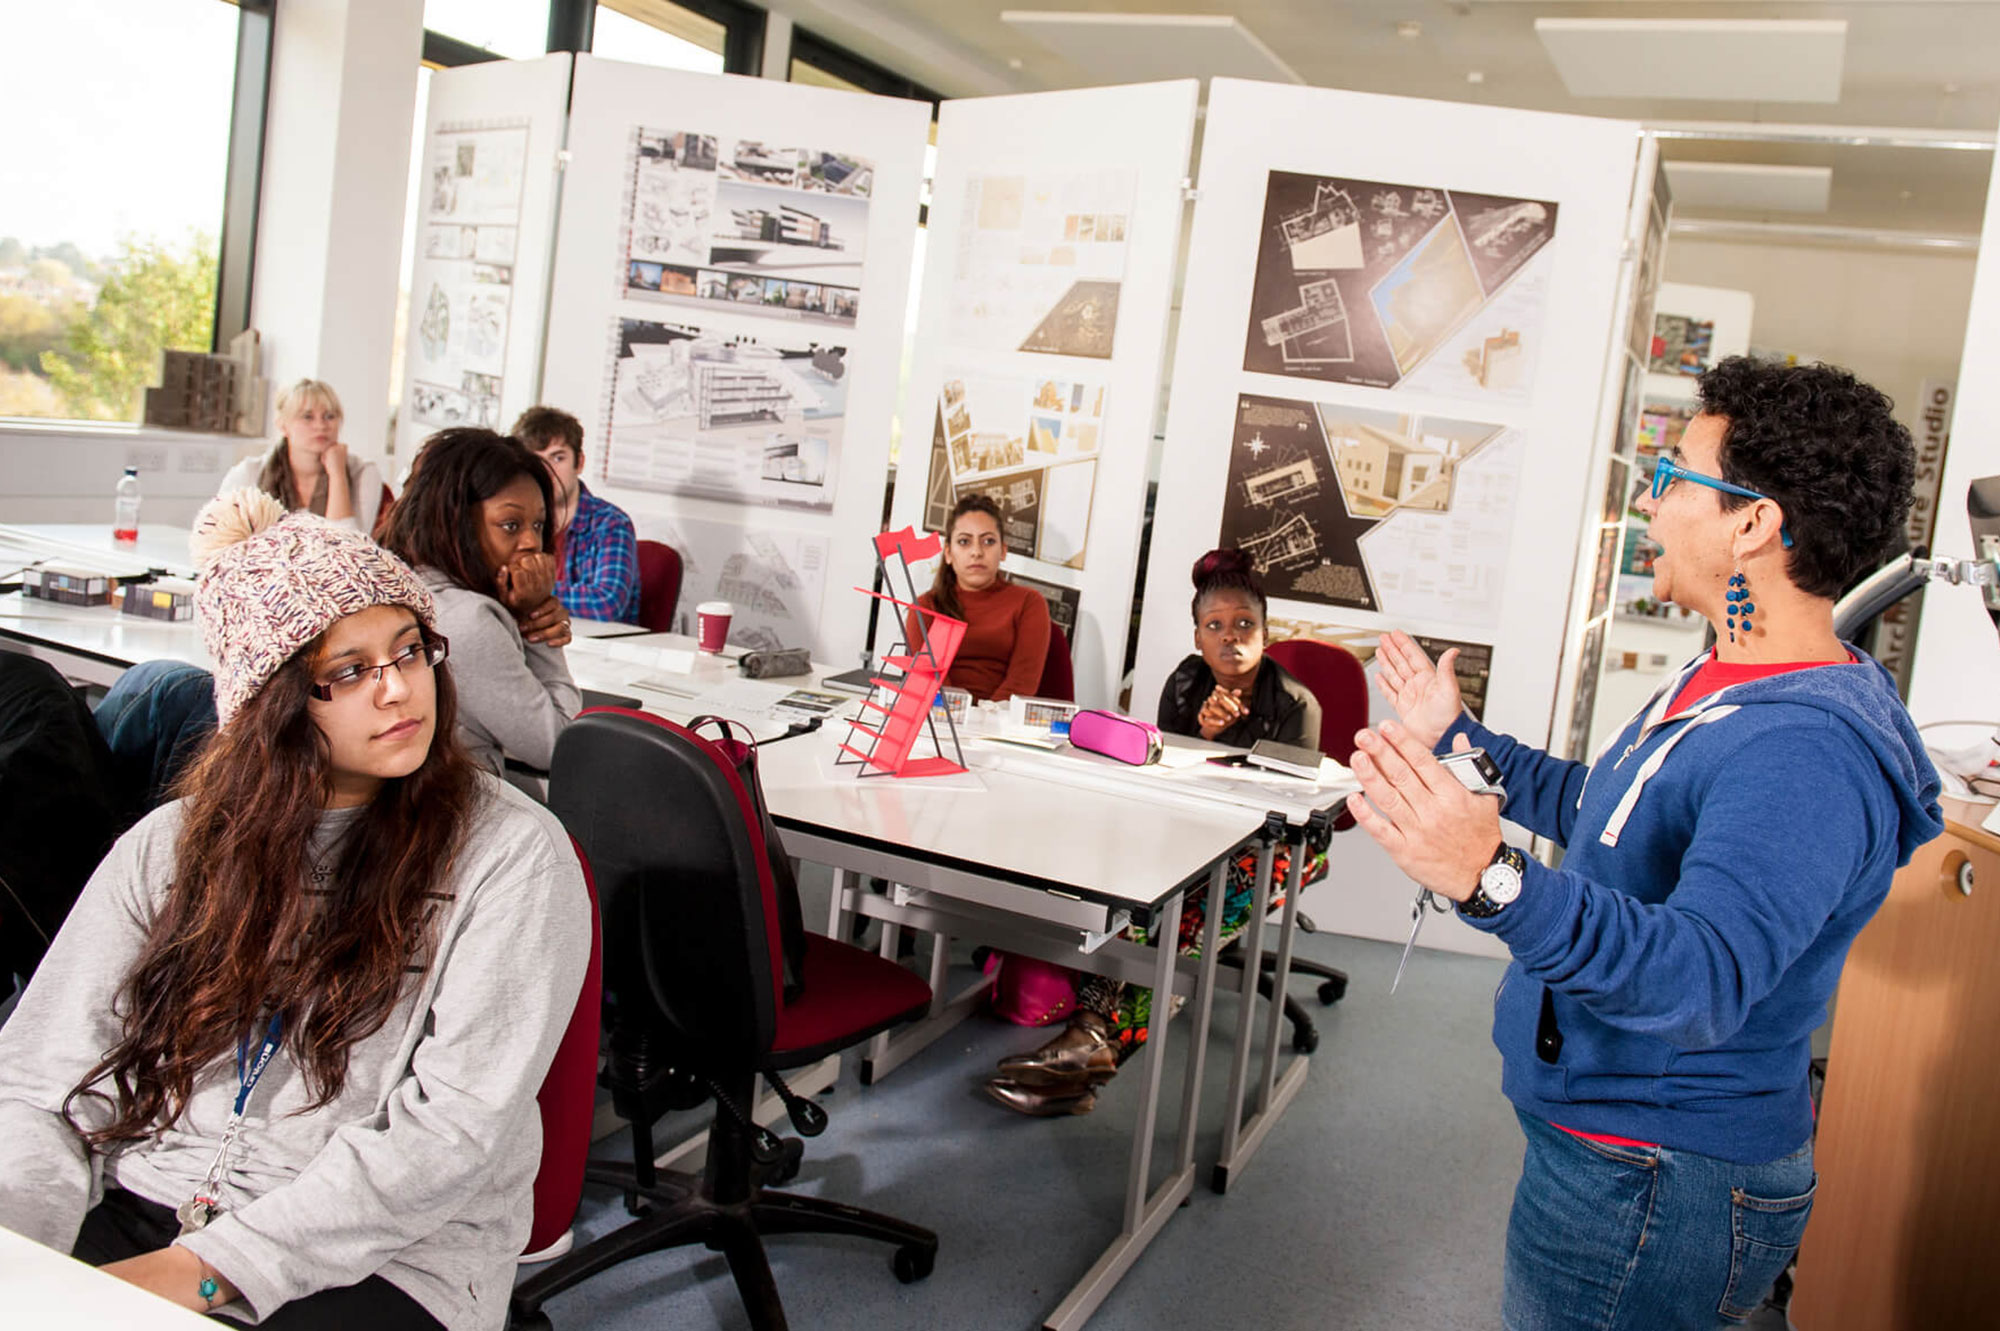 Architecture students have a lecture at Markeaton Street